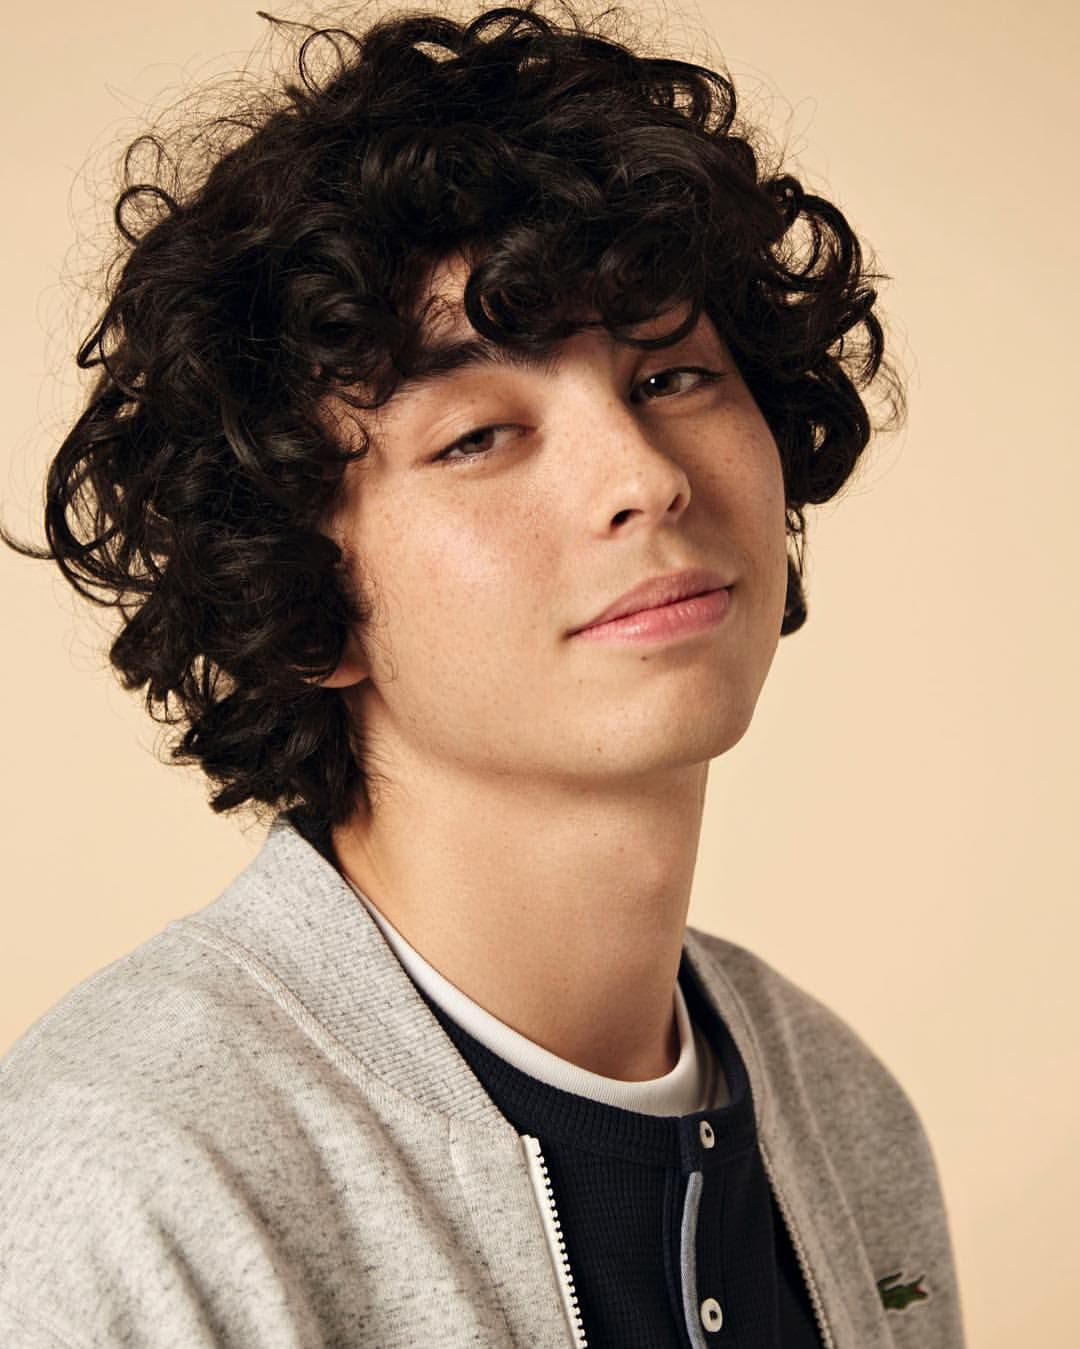 5 817 Likes 14 Comments Lacoste Lacoste On Instagram Fridays With The Lacoste Live Topspin Collecti Curly Hair Styles Long Hair Styles Men Hair Styles